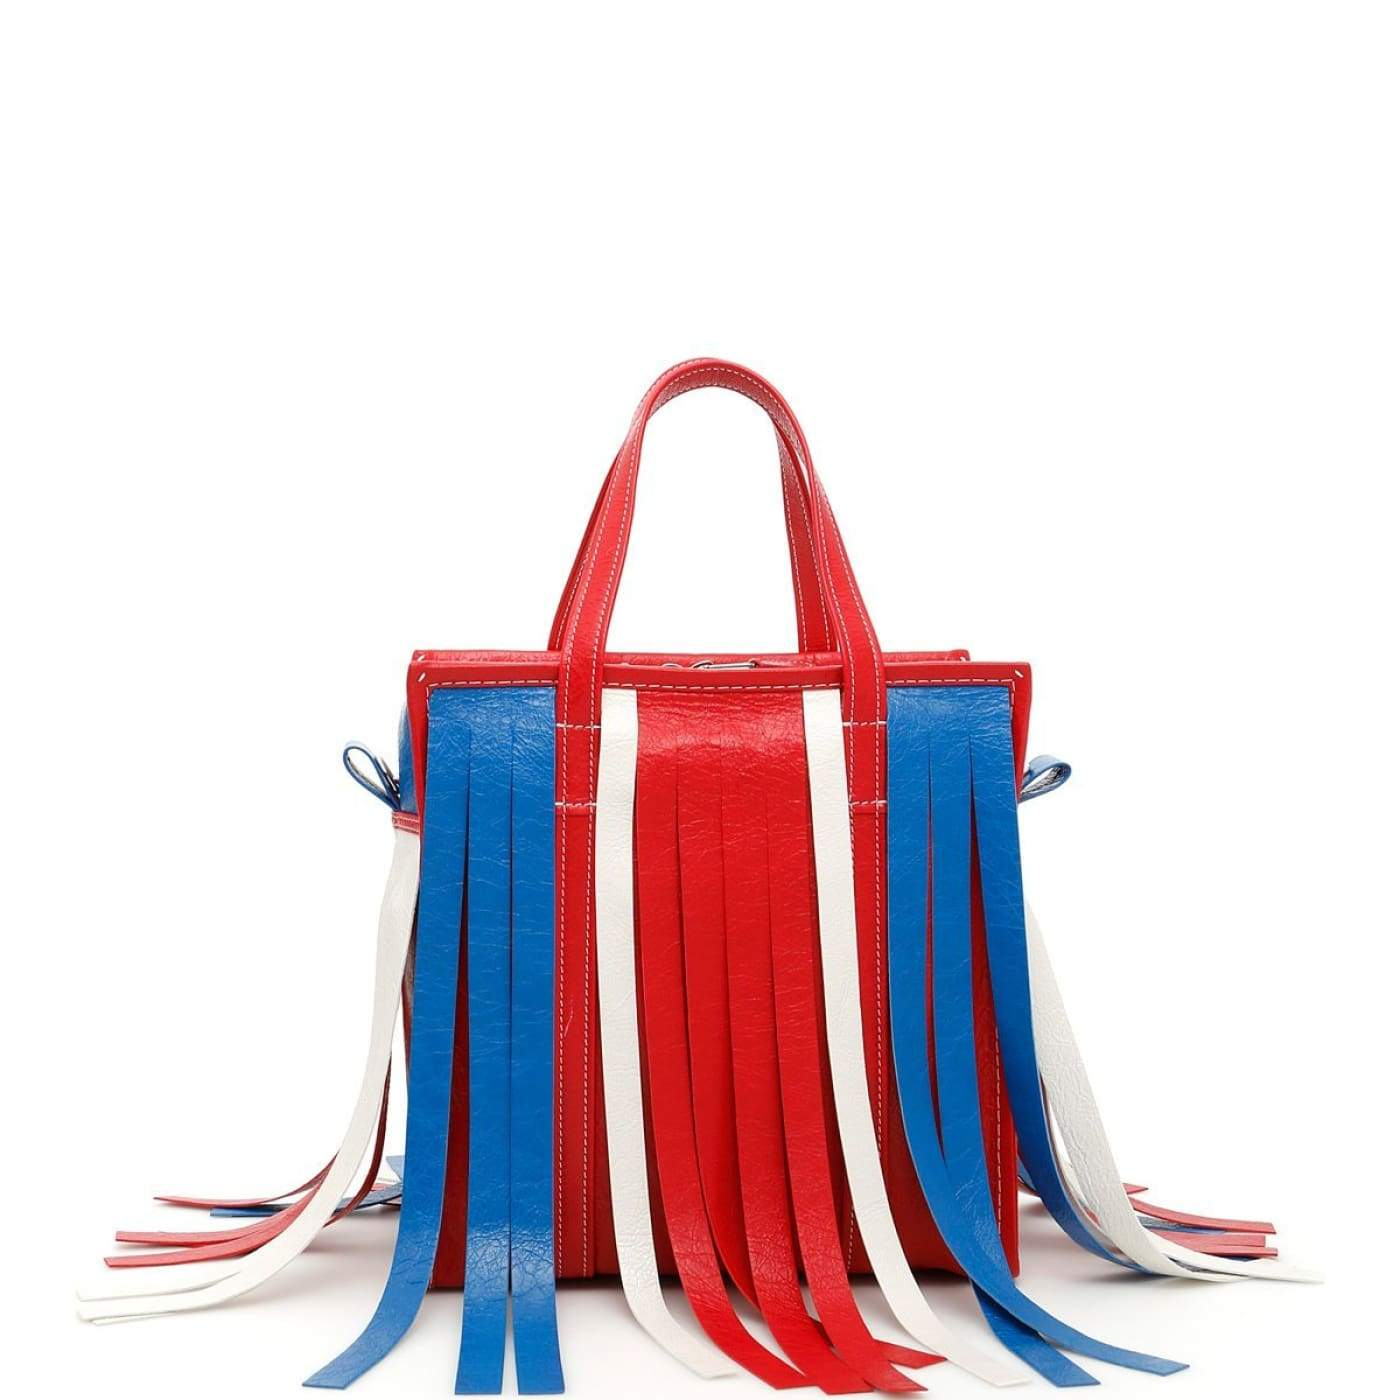 ec5ee9a821fa3 Balenciaga small multicolor leather bazar fringe tote bag - Funky Town  Clothing